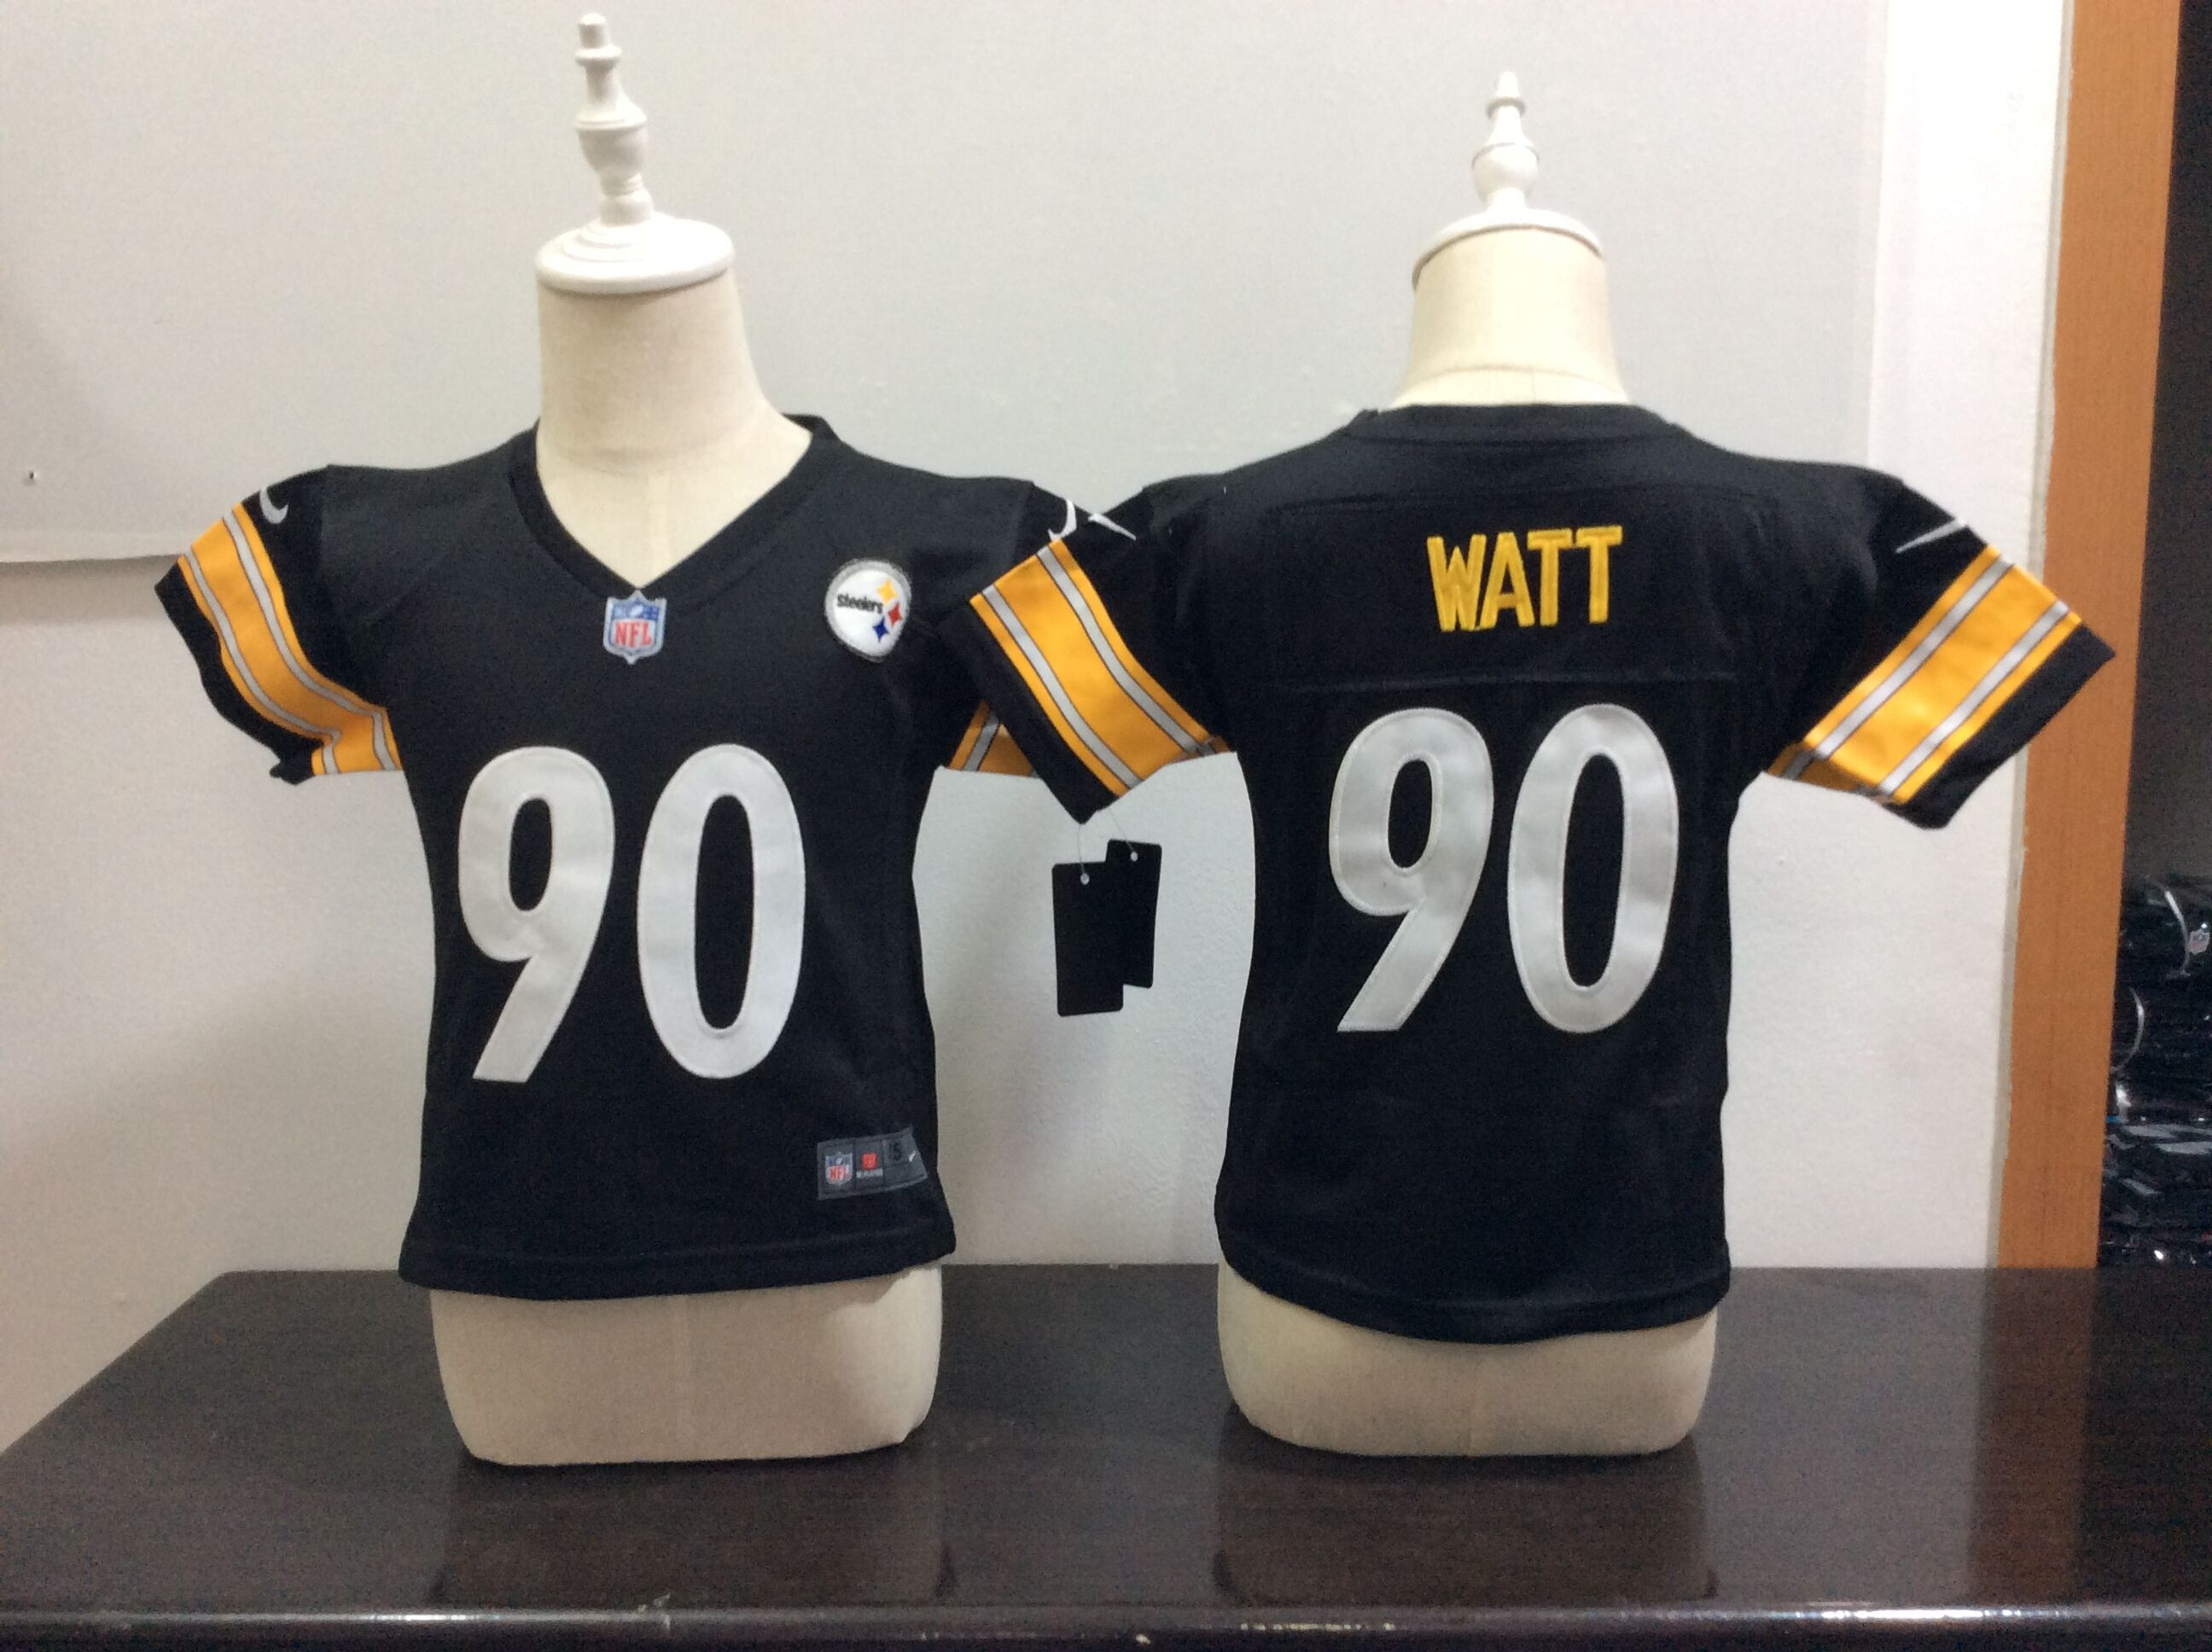 Baby Pittsburgh Steelers 90 Watt Black Nike NFL Jerseys